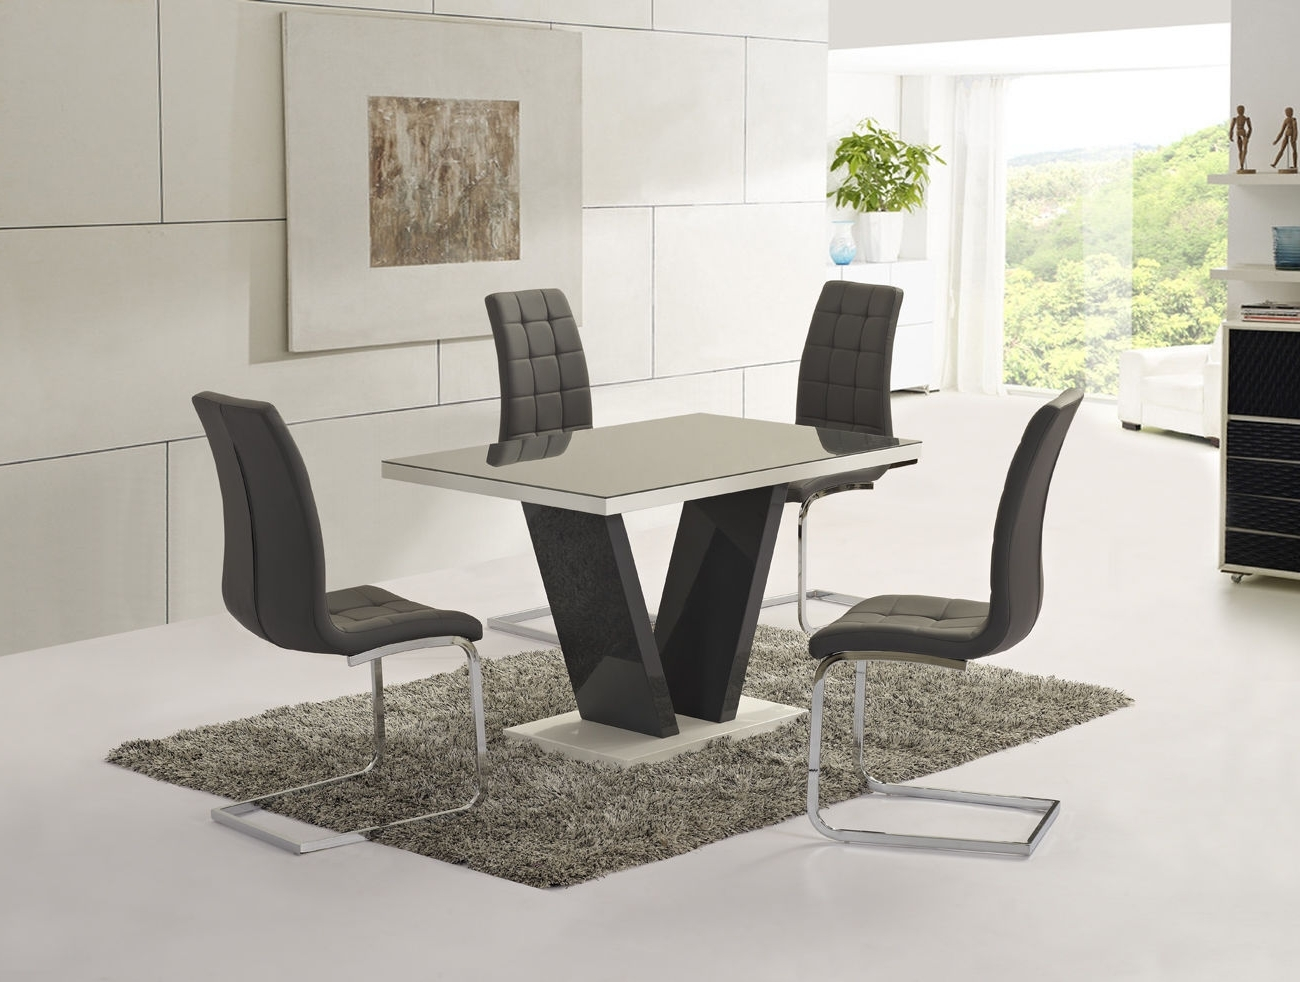 Ga Vico Gloss Grey Glass Top Designer 160Cm Dining Set – 4 6 Grey With Regard To Most Recently Released Black High Gloss Dining Tables And Chairs (View 8 of 25)